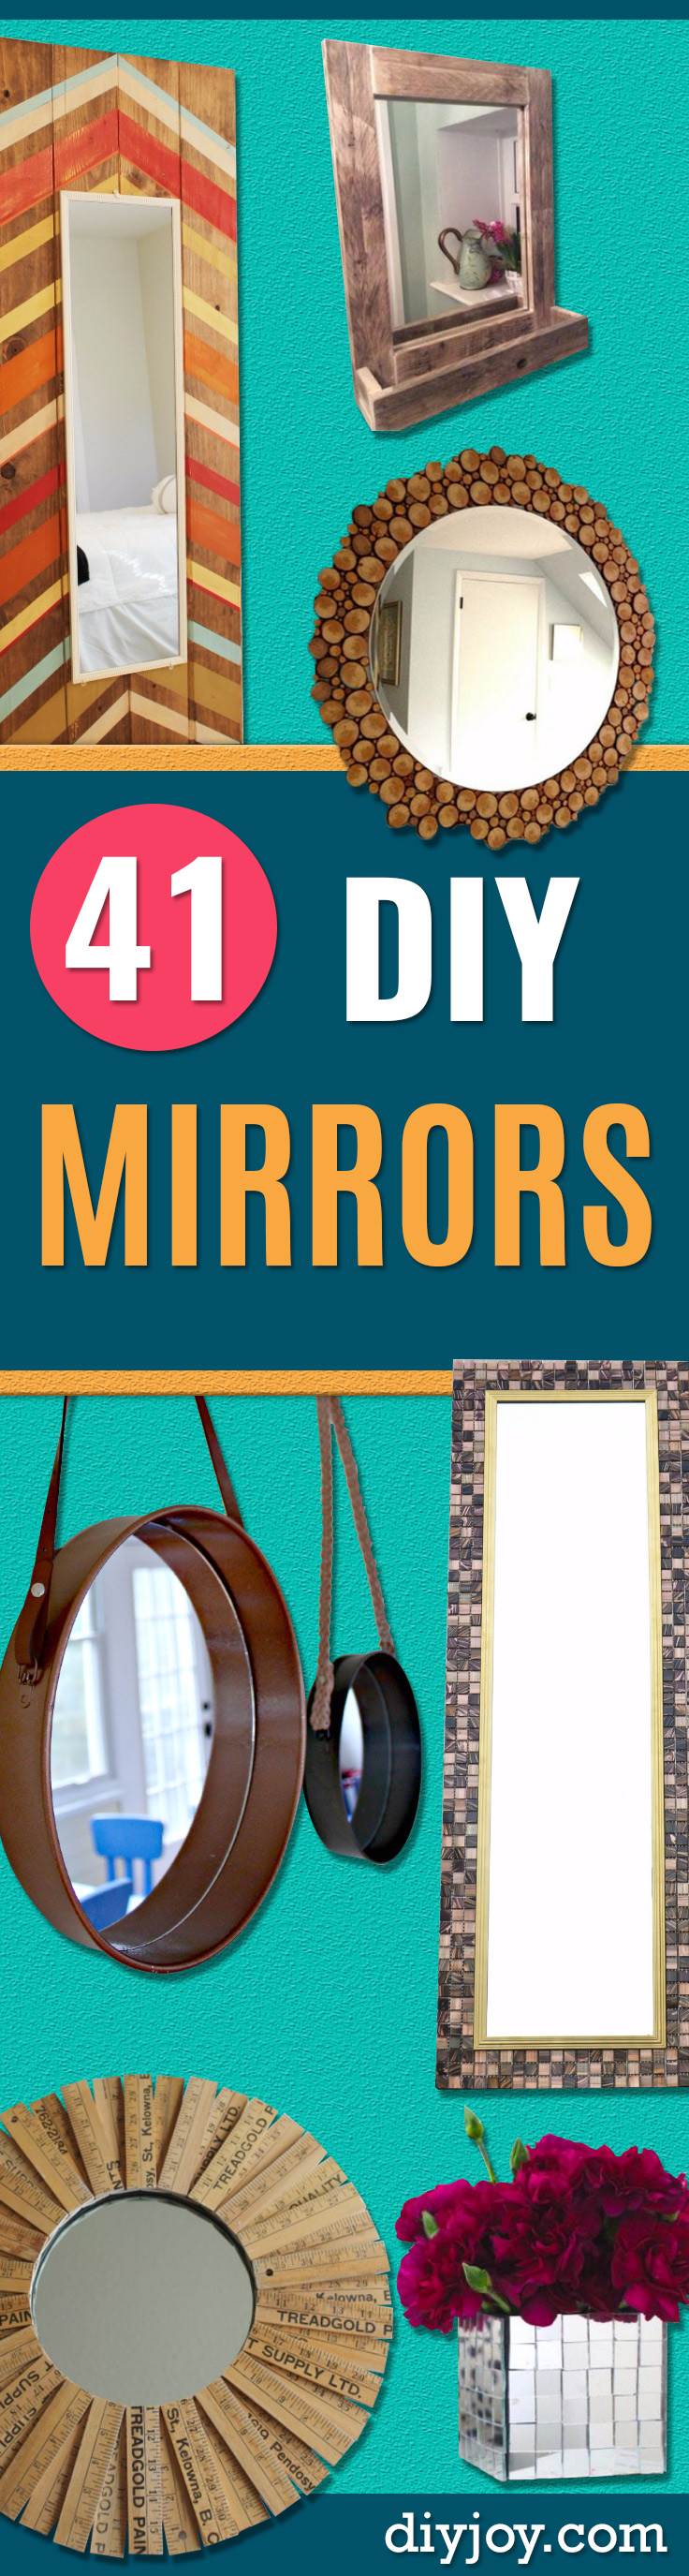 DIY Mirrors and Mirror Home Decor Projects - Best Do It Yourself Mirror Projects and Cool Crafts Using Mirrors - Home Decor, Bedroom Decor and Bath Ideas - Step By Step Tutorials With Instructions